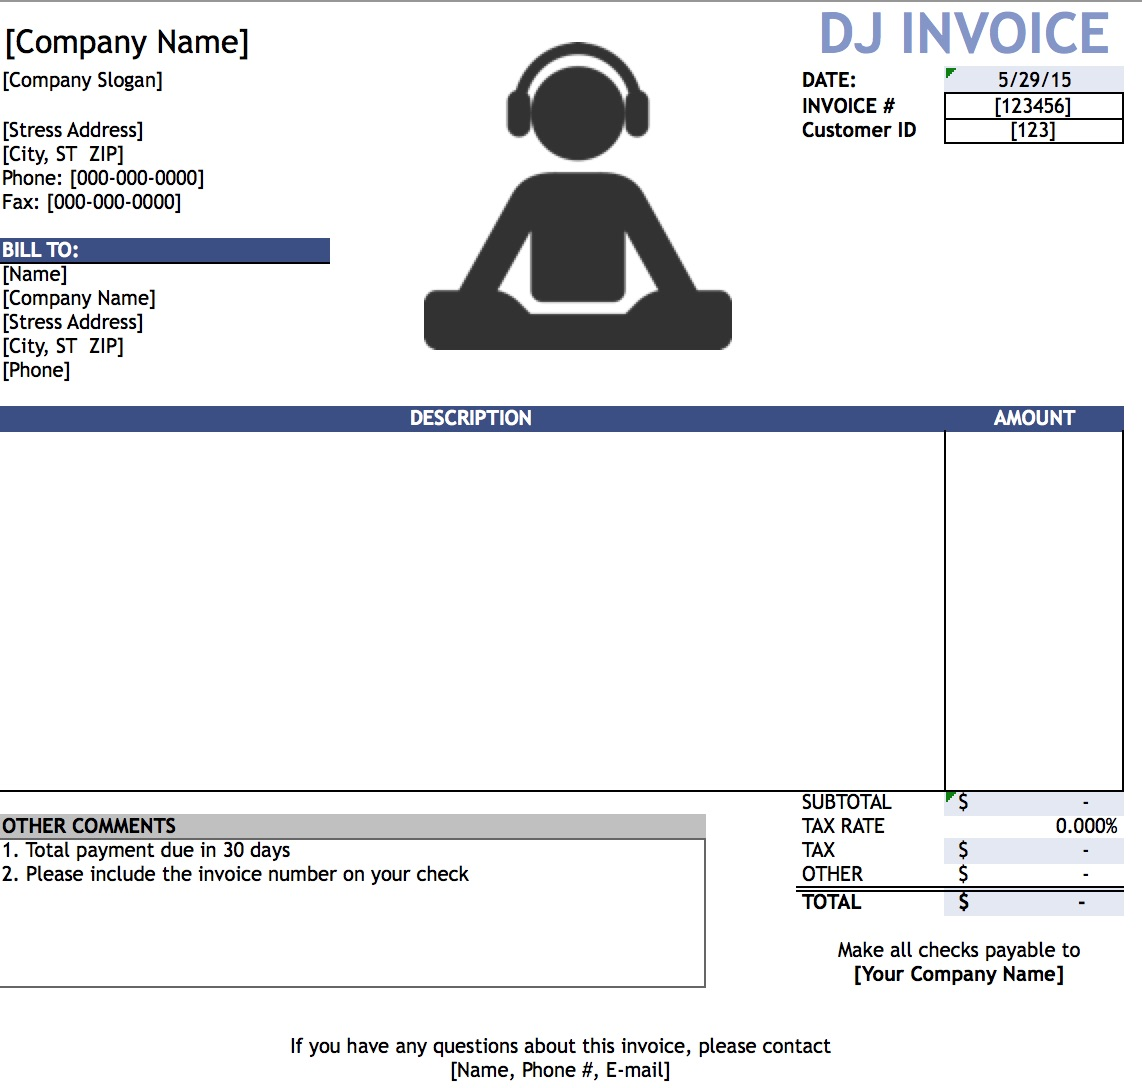 Free DJ Disc Jockey Invoice Template Excel PDF Word Doc - How to make invoice in excel for service business